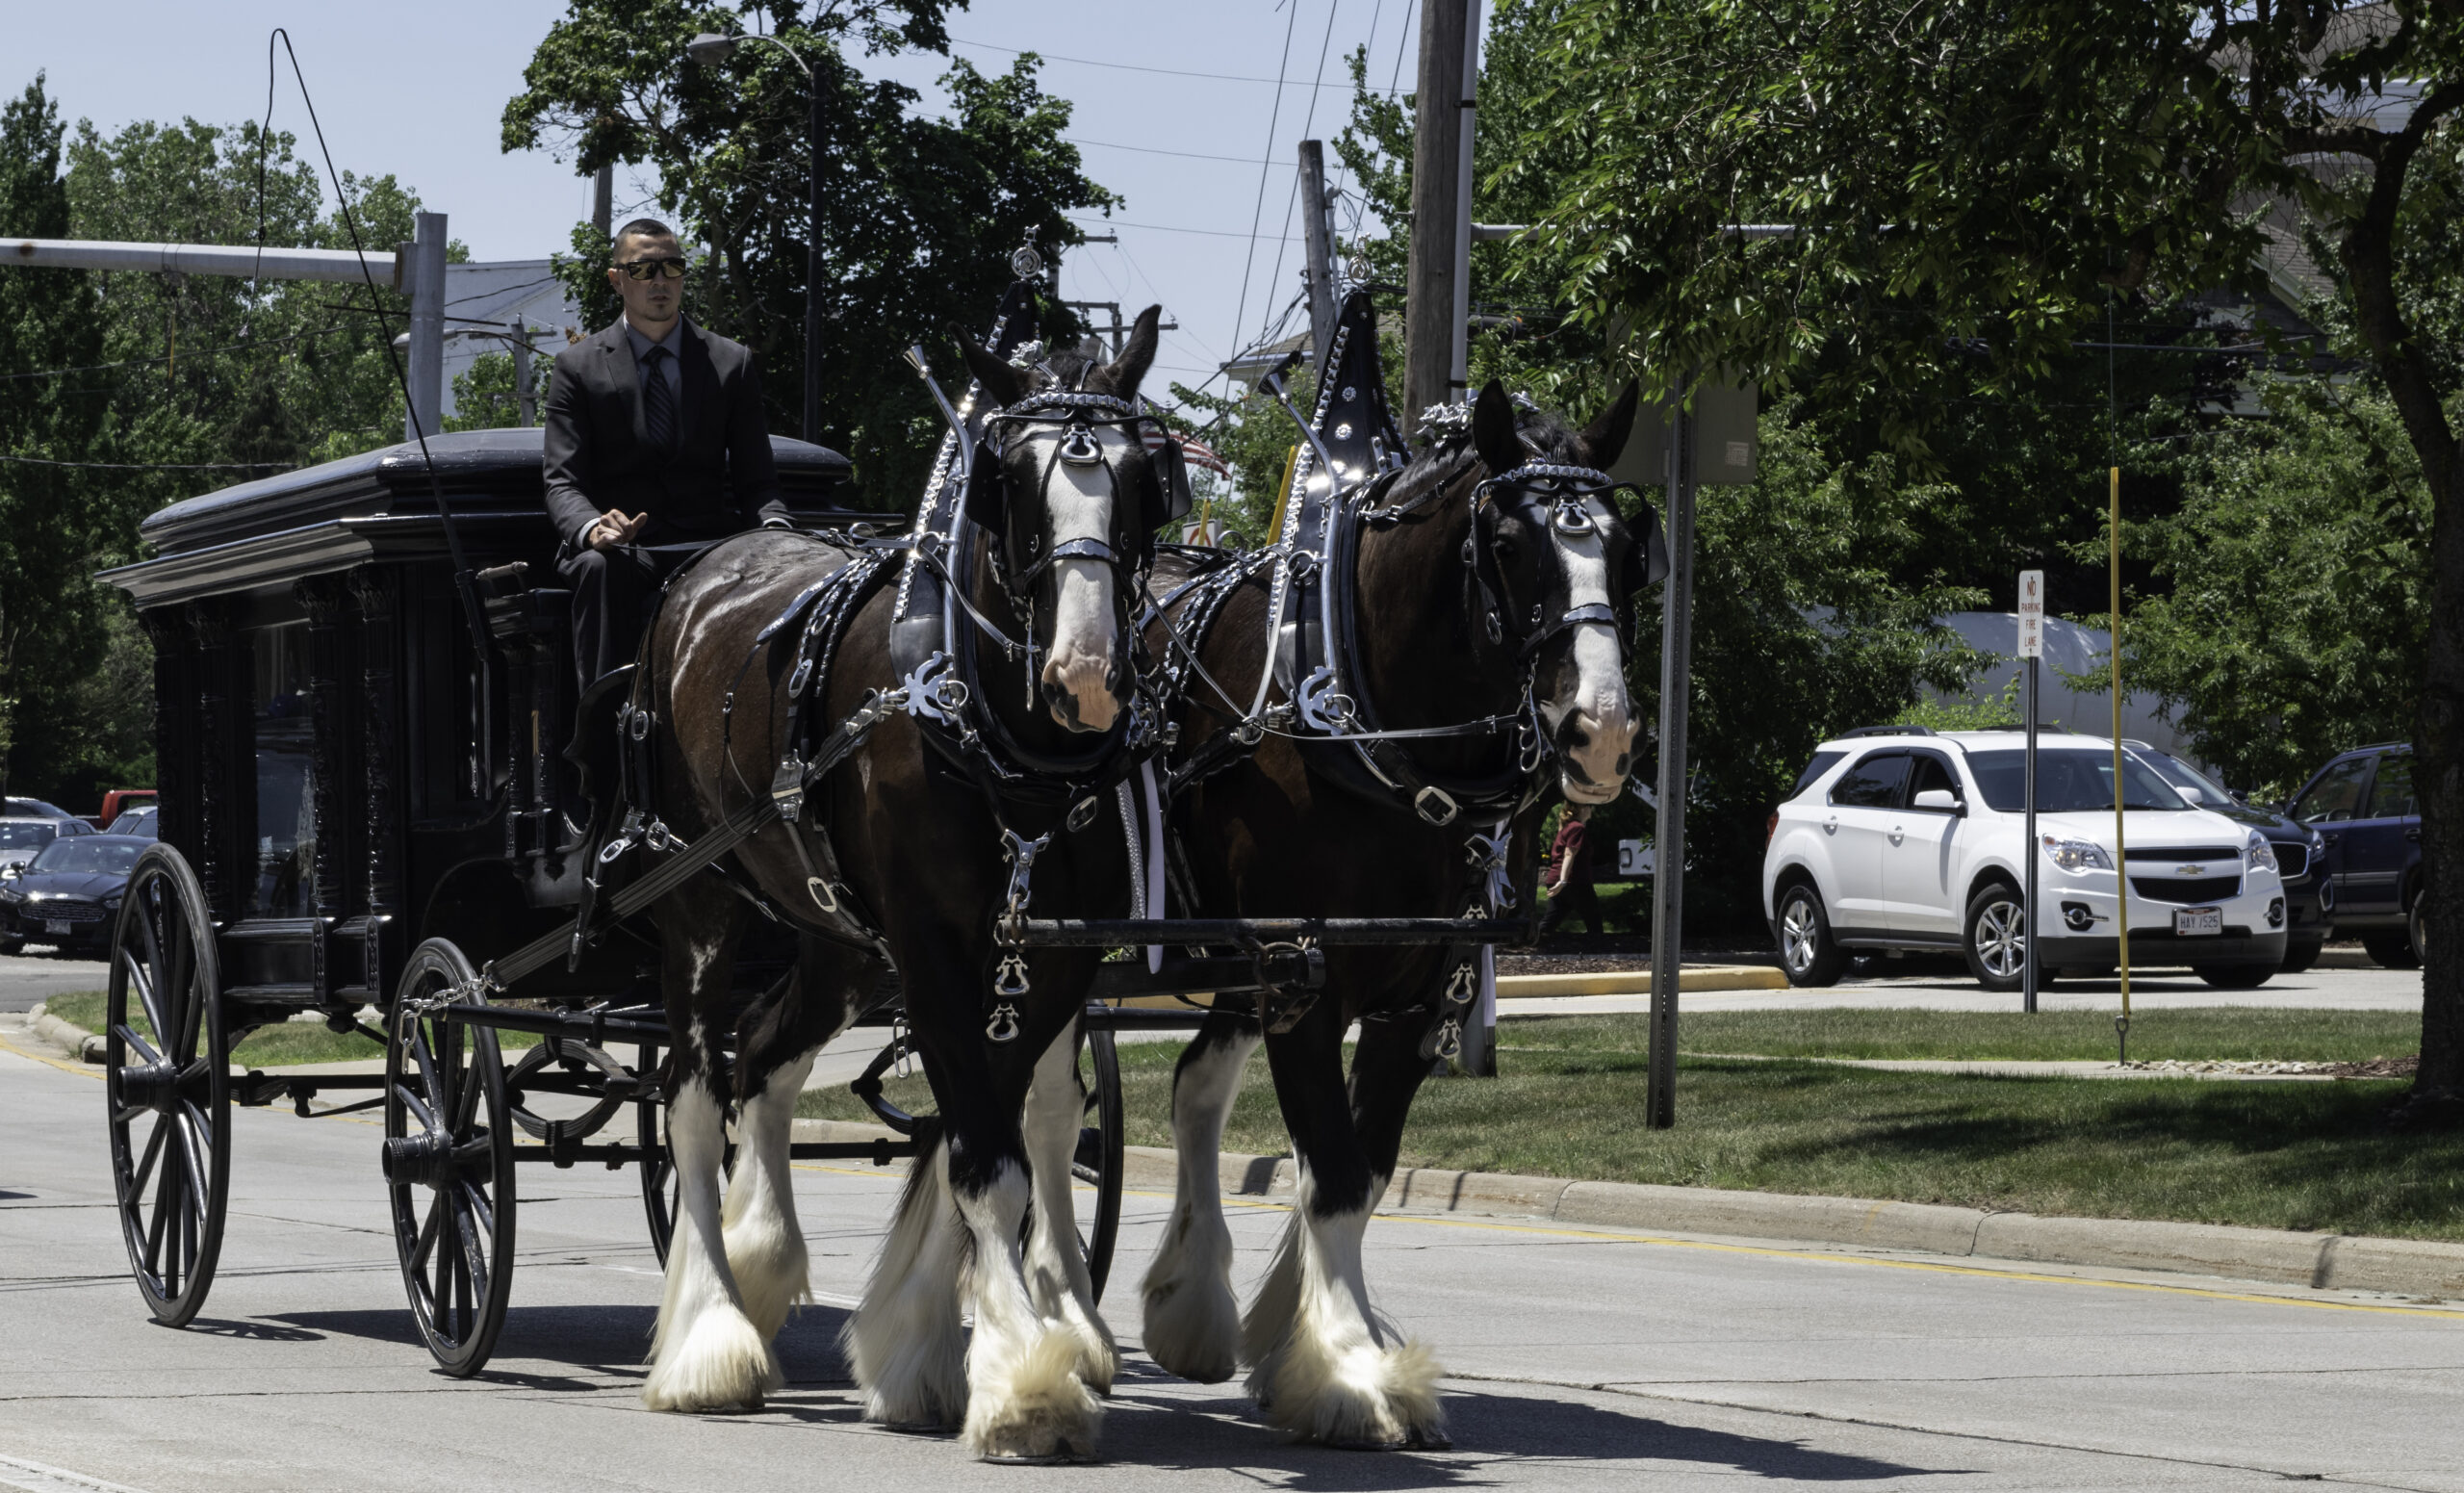 photo of two large identical horses pulling an 1870s hearse. The driver is wearing a black suit and black shirt and sunglasses, his driving crop raised in the air.